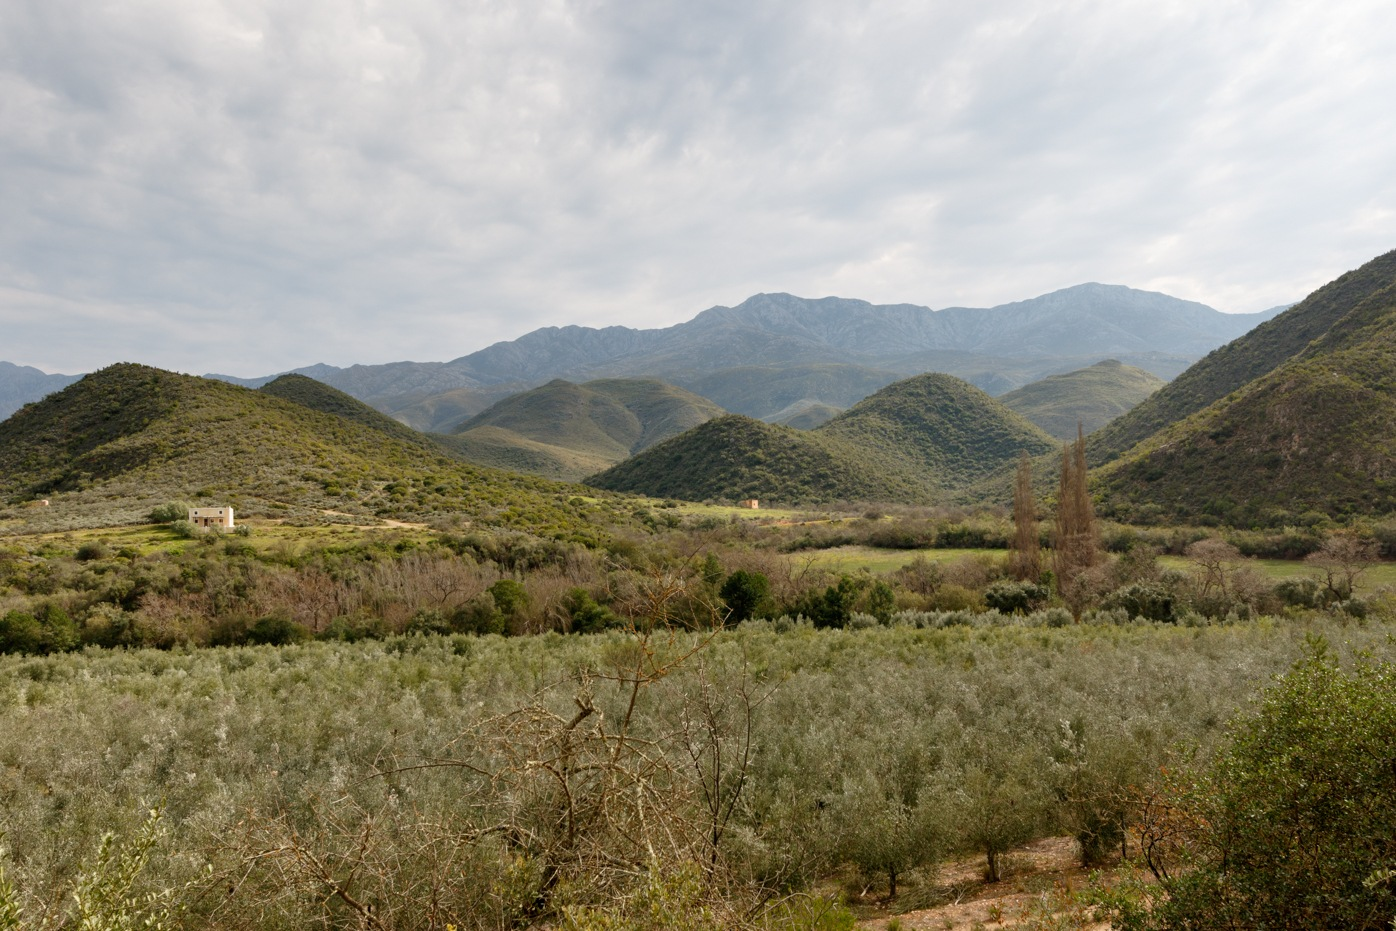 Green orchard view with mountains and moody clouds by Mark de Scande